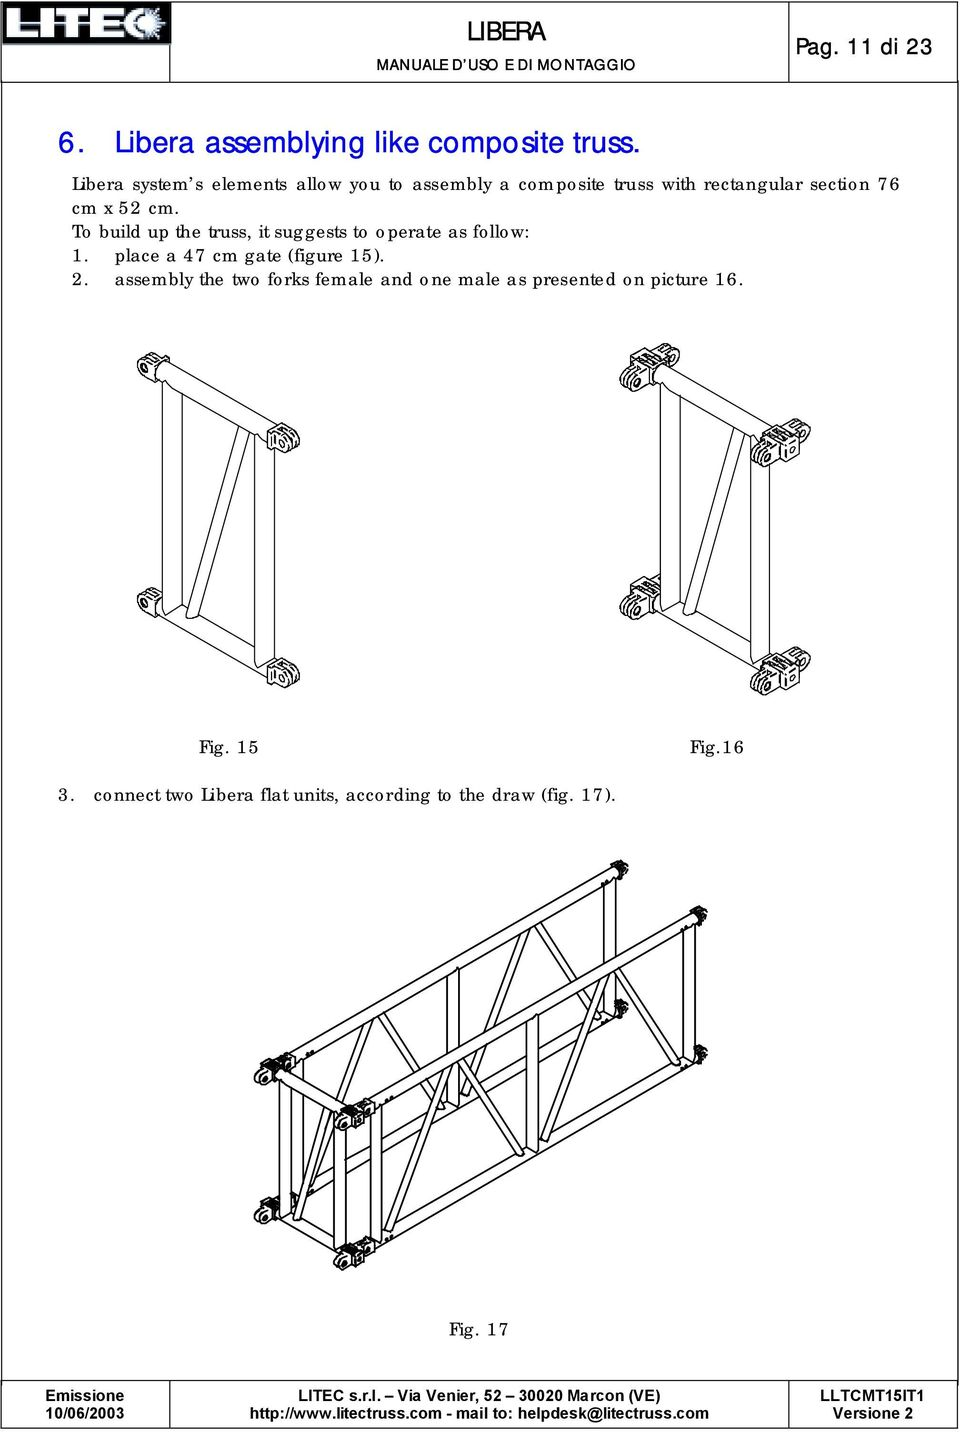 To build up the truss, it suggests to operate as follow: 1. place a 47 cm gate (figure 15). 2.